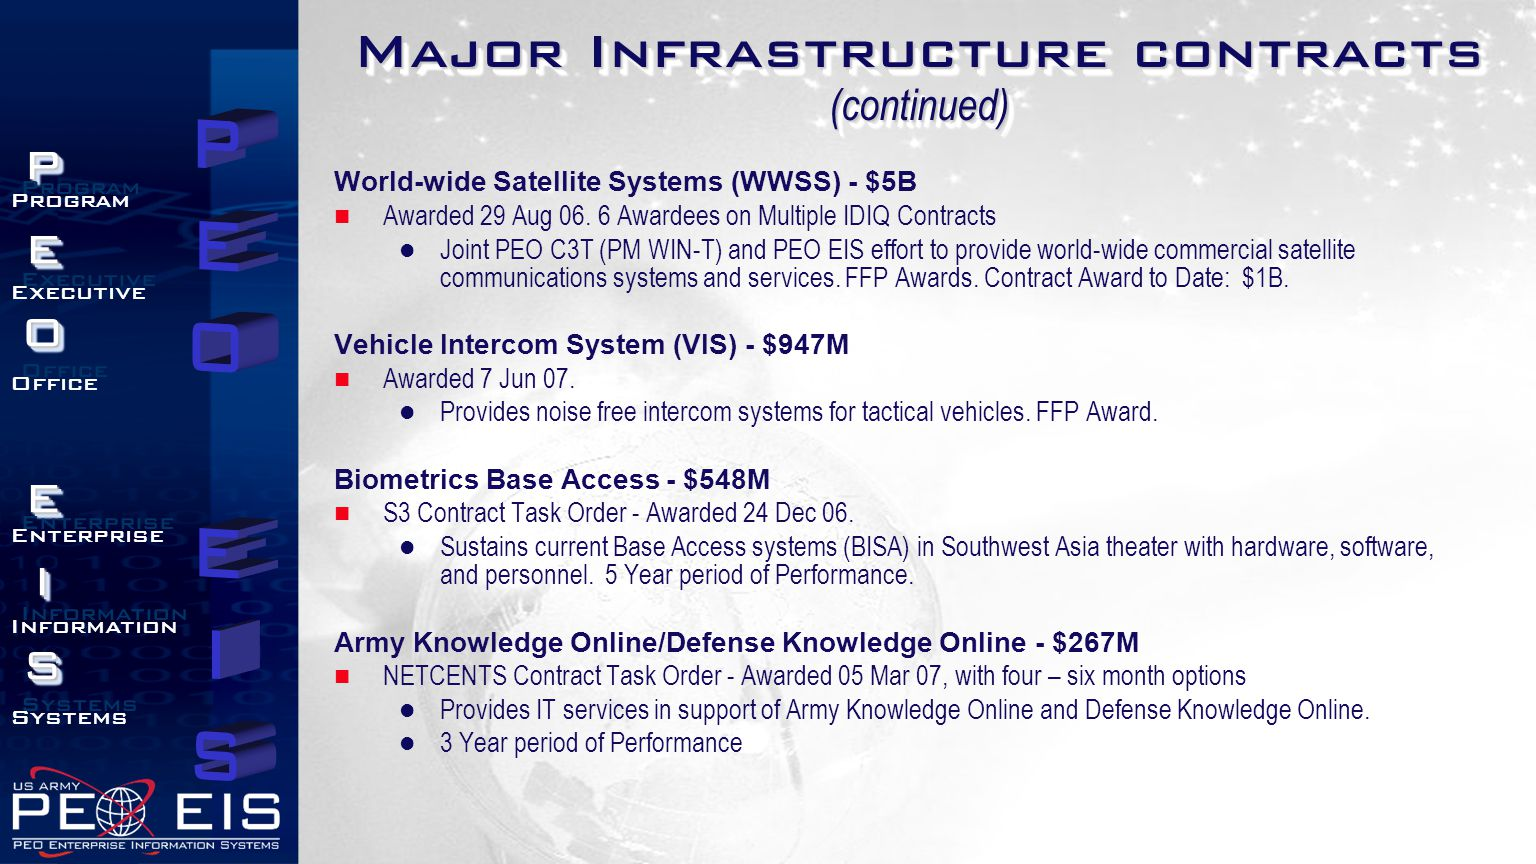 Major Infrastructure contracts (continued)